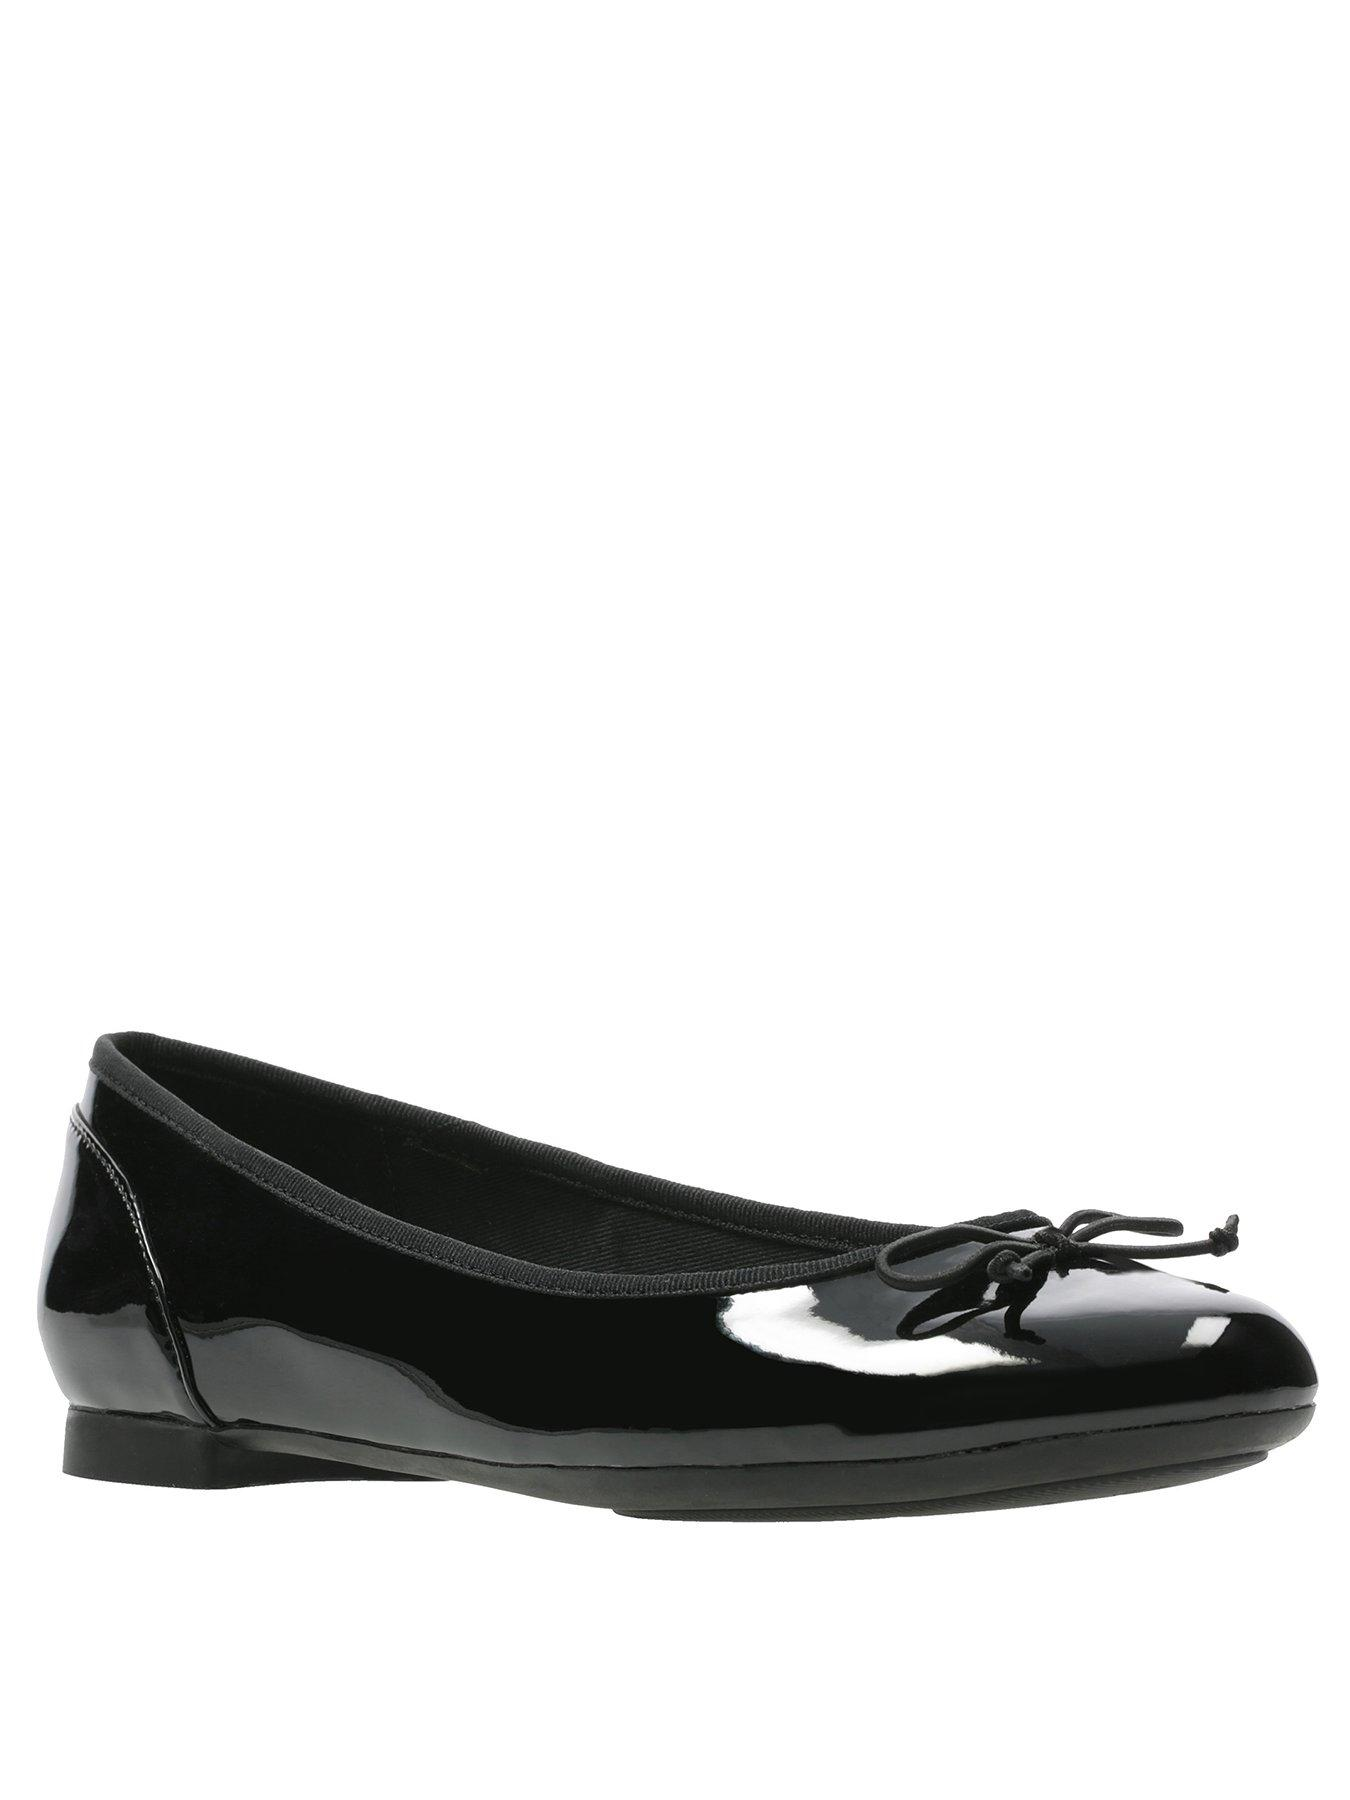 Clarks Couture Bloom Ballerina - Black Patent